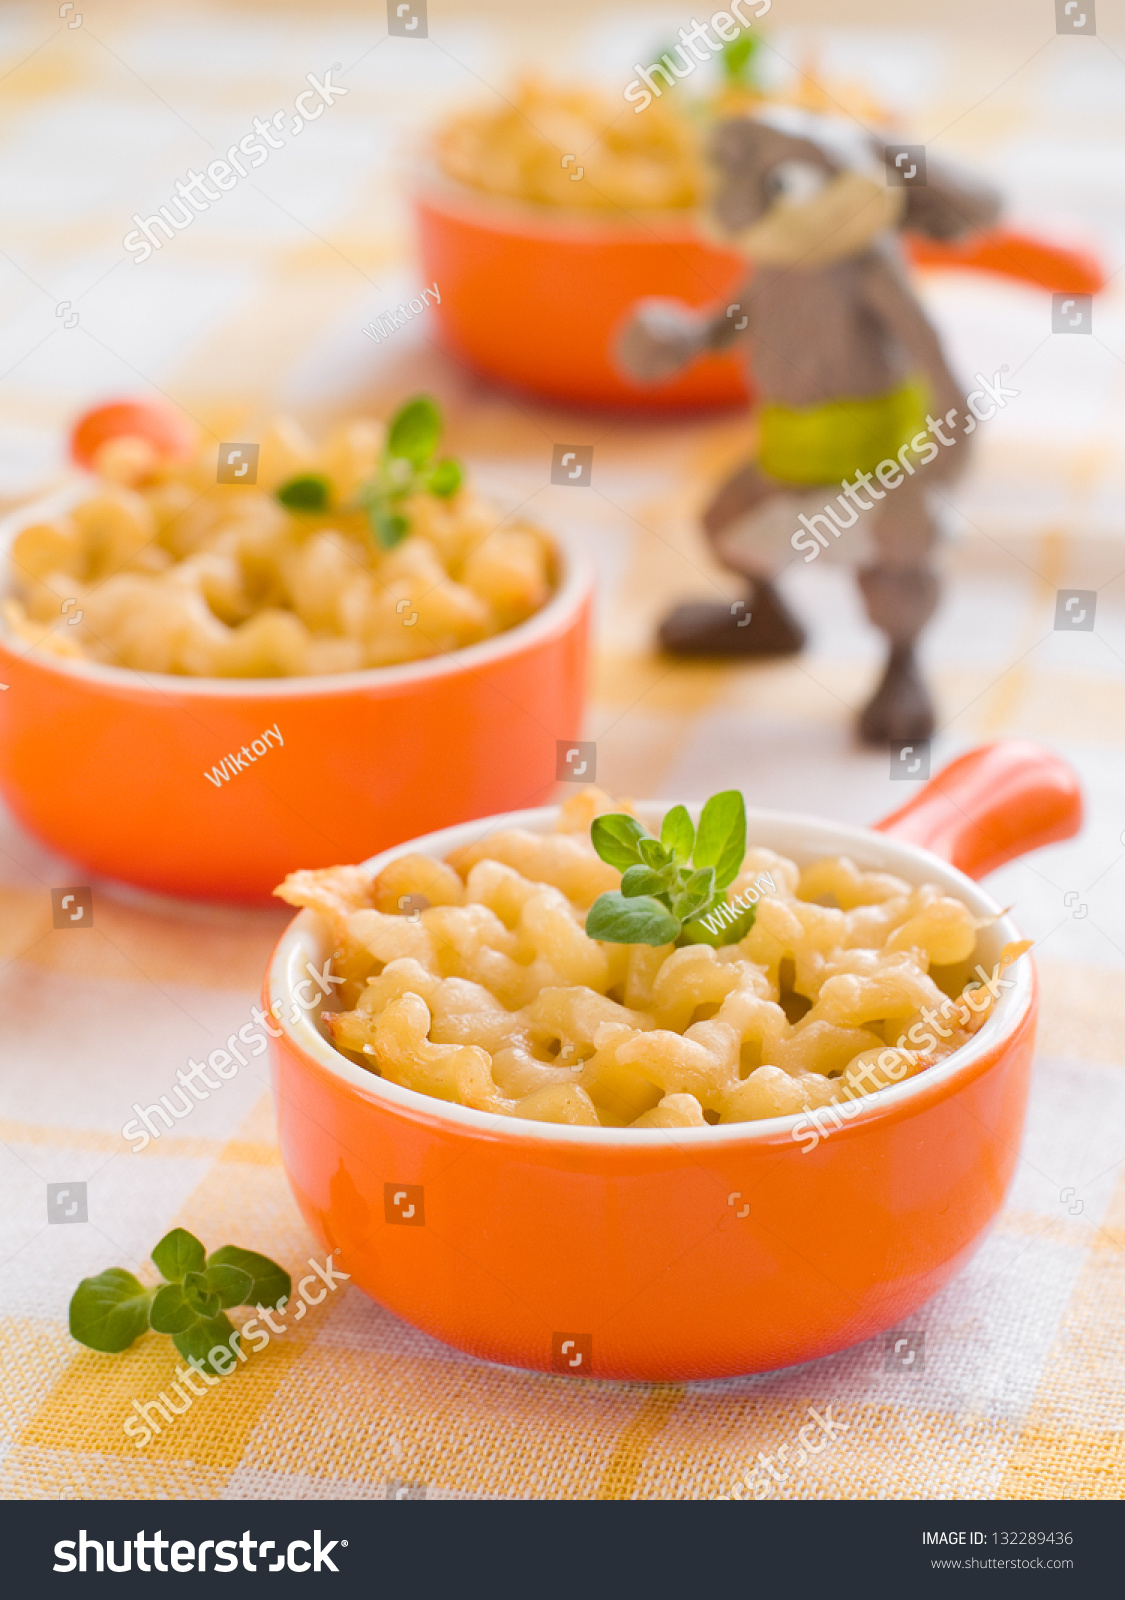 Mac And Cheese, Shot For A Story On Homemade, Organic